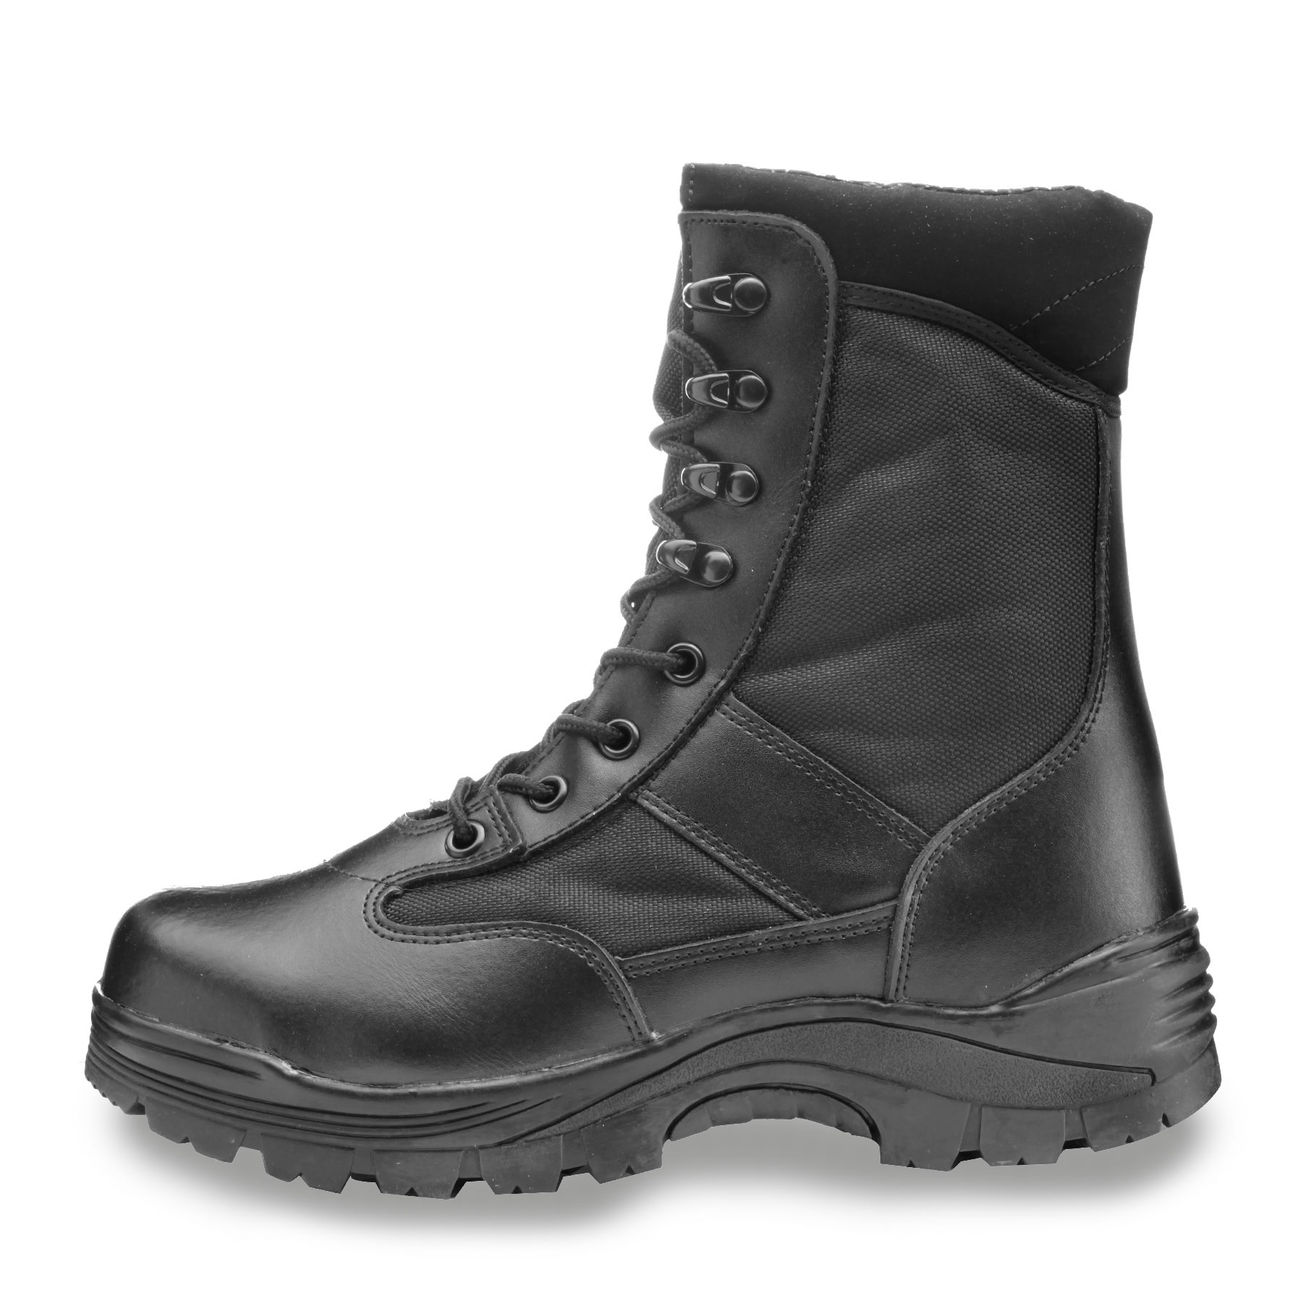 Security Stiefel Boots 8-Loch Mil-Tec 0